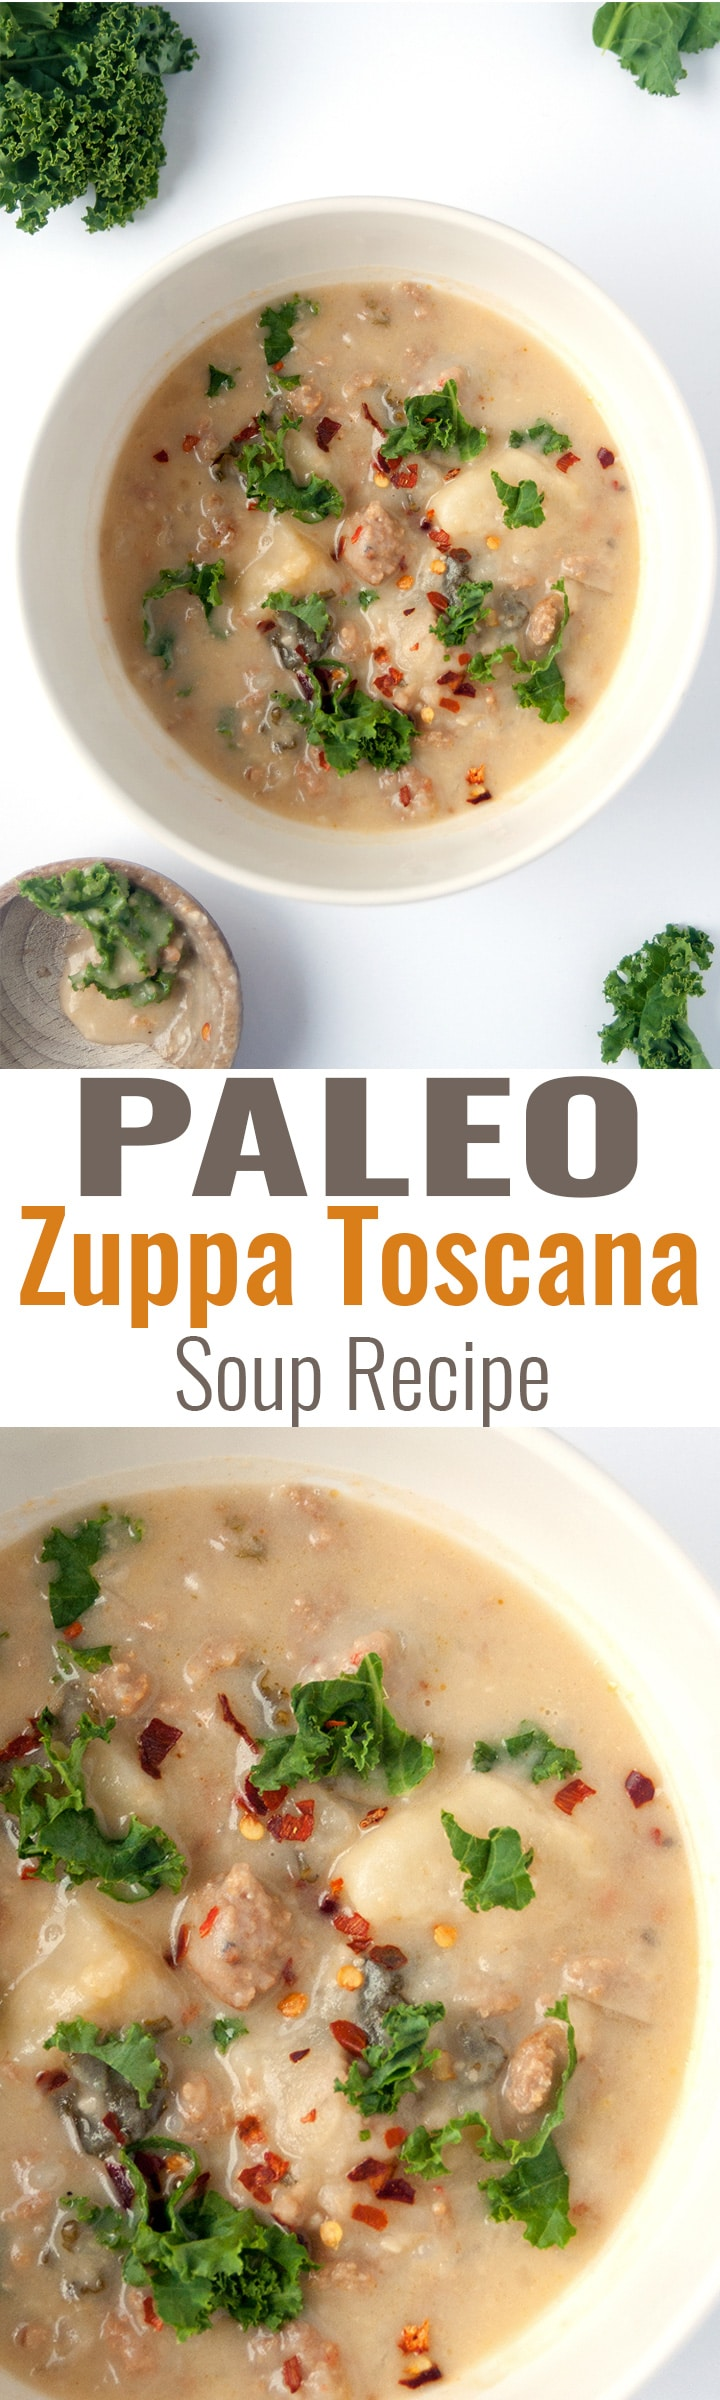 Paleo Zuppa Toscana Soup - an easy and simple paleo twist on a classic soup recipe. It's so creamy and delicious! Perfect for chilly winter nights. | thebewitchinkitchen.com